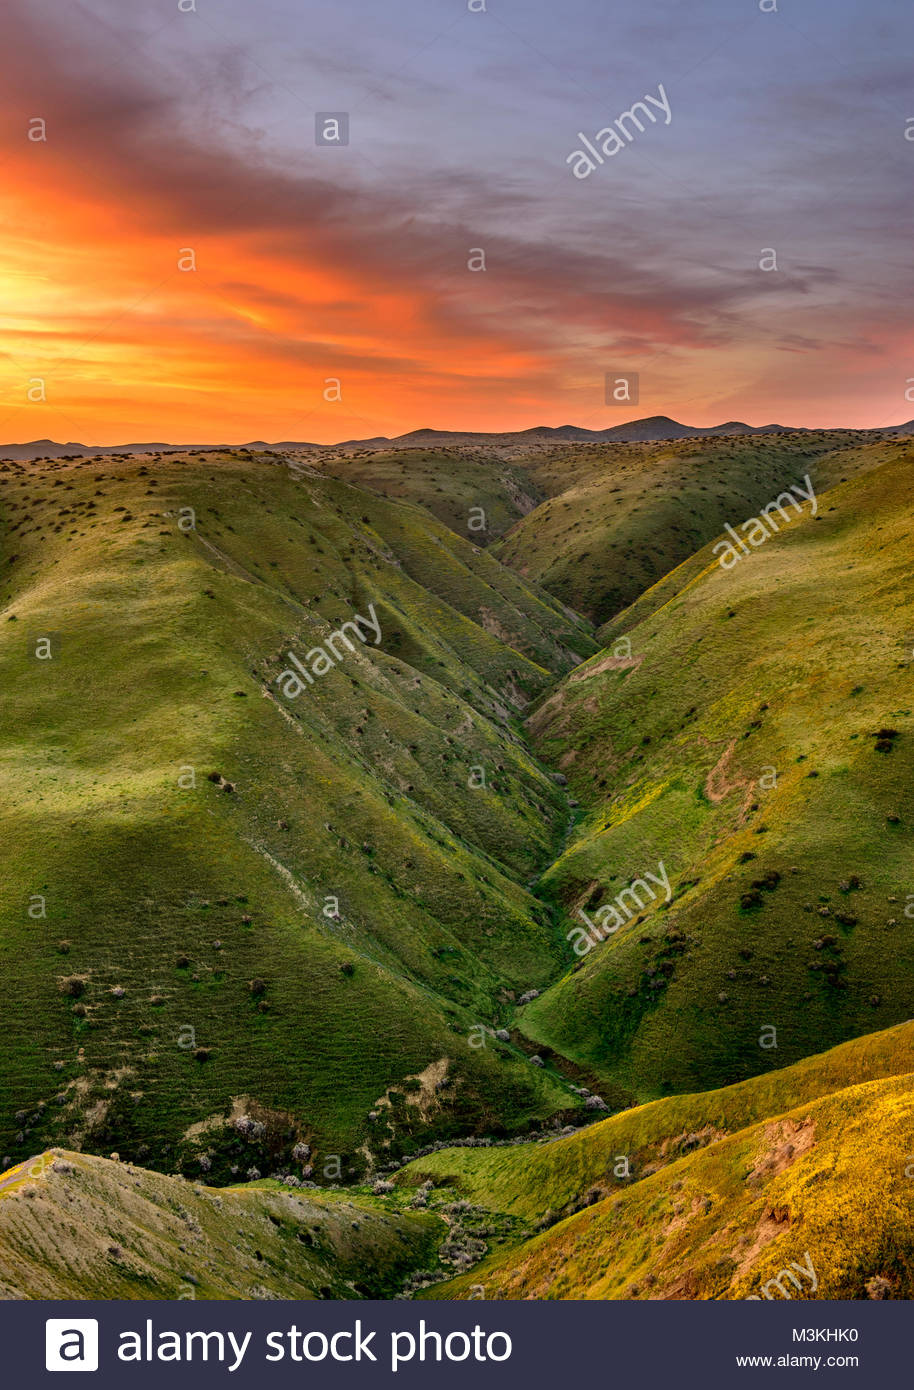 Colline Panoche Wilderness Area di studio prima dell'alba, Fresno County, California Immagini Stock